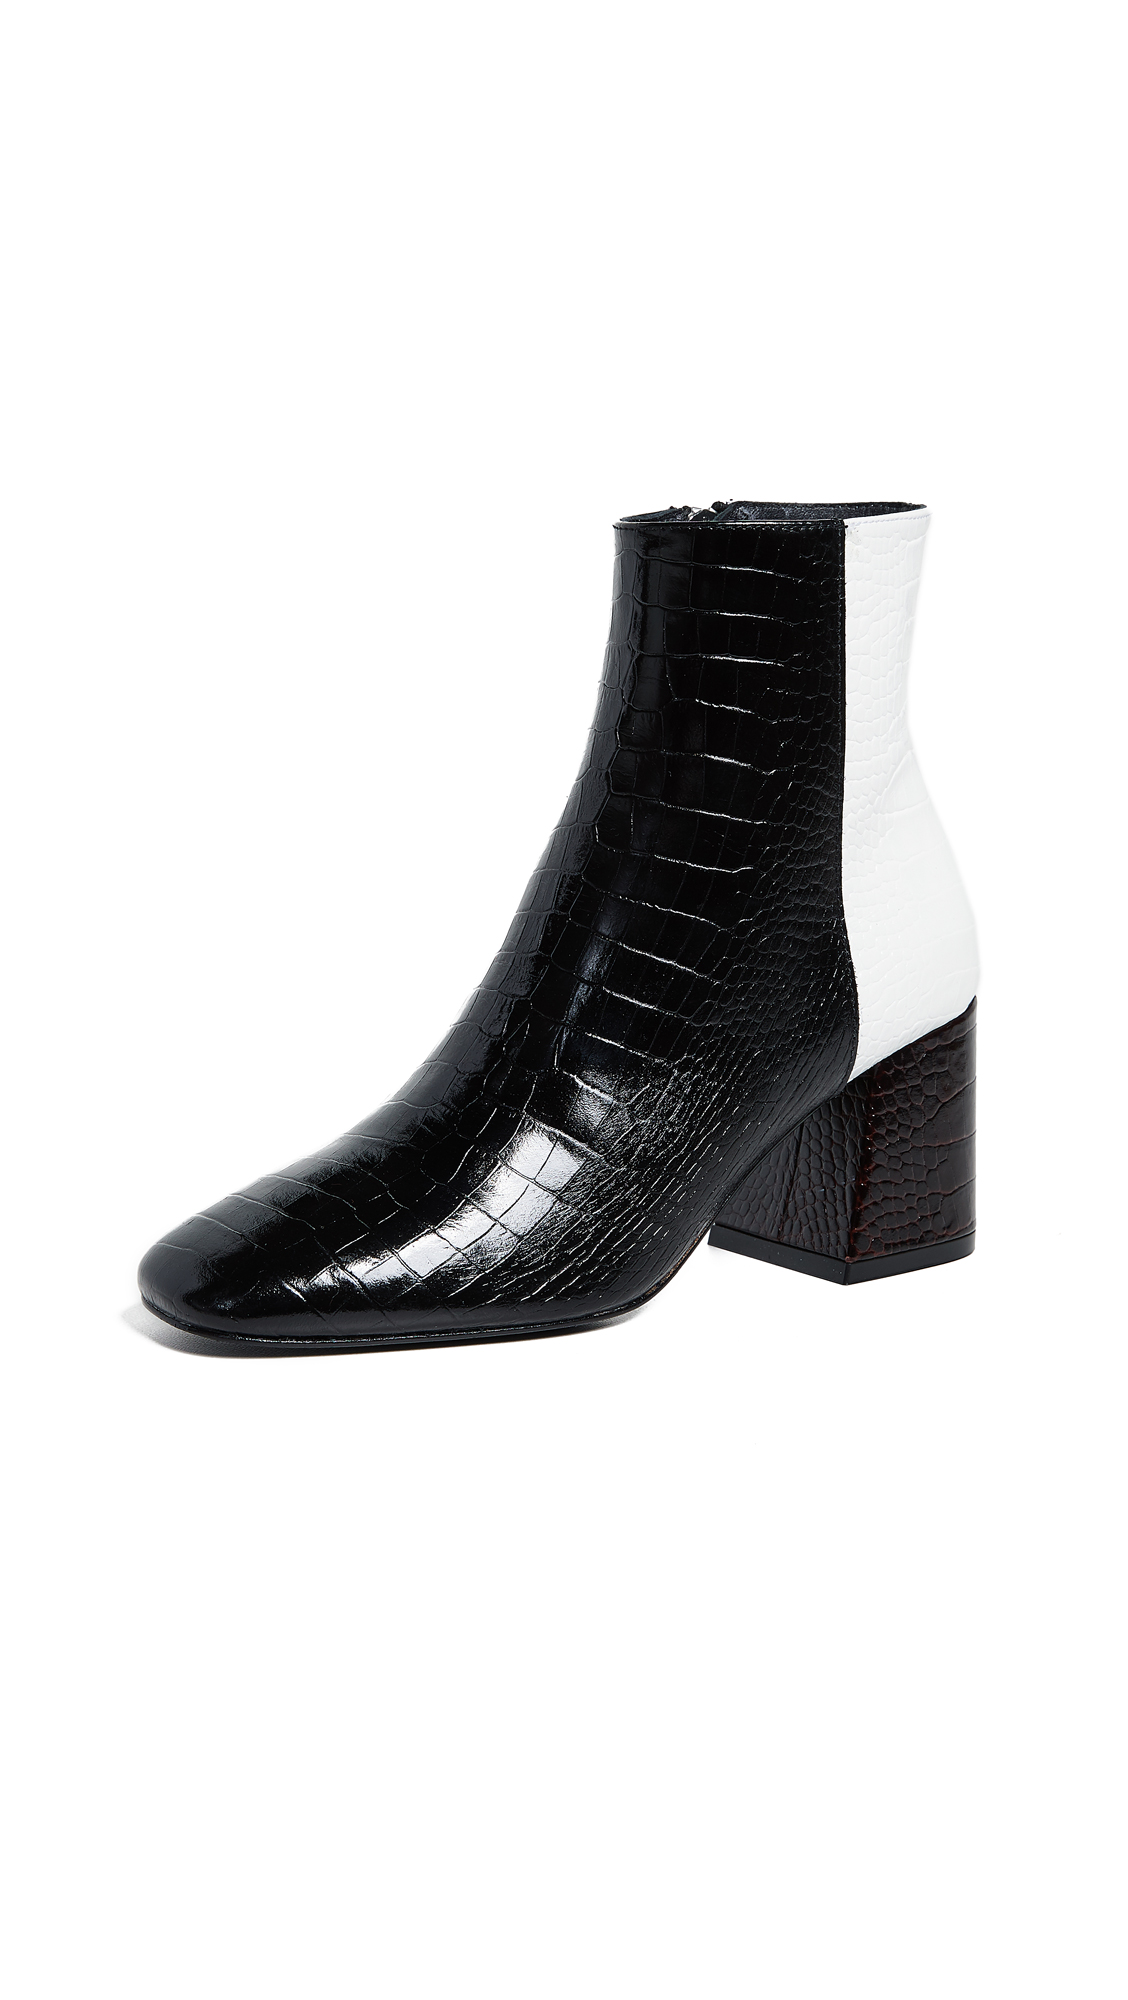 FREDA SALVADOR Women'S Charm Square Toe Croc-Embossed Patent Leather Booties in Tri Color